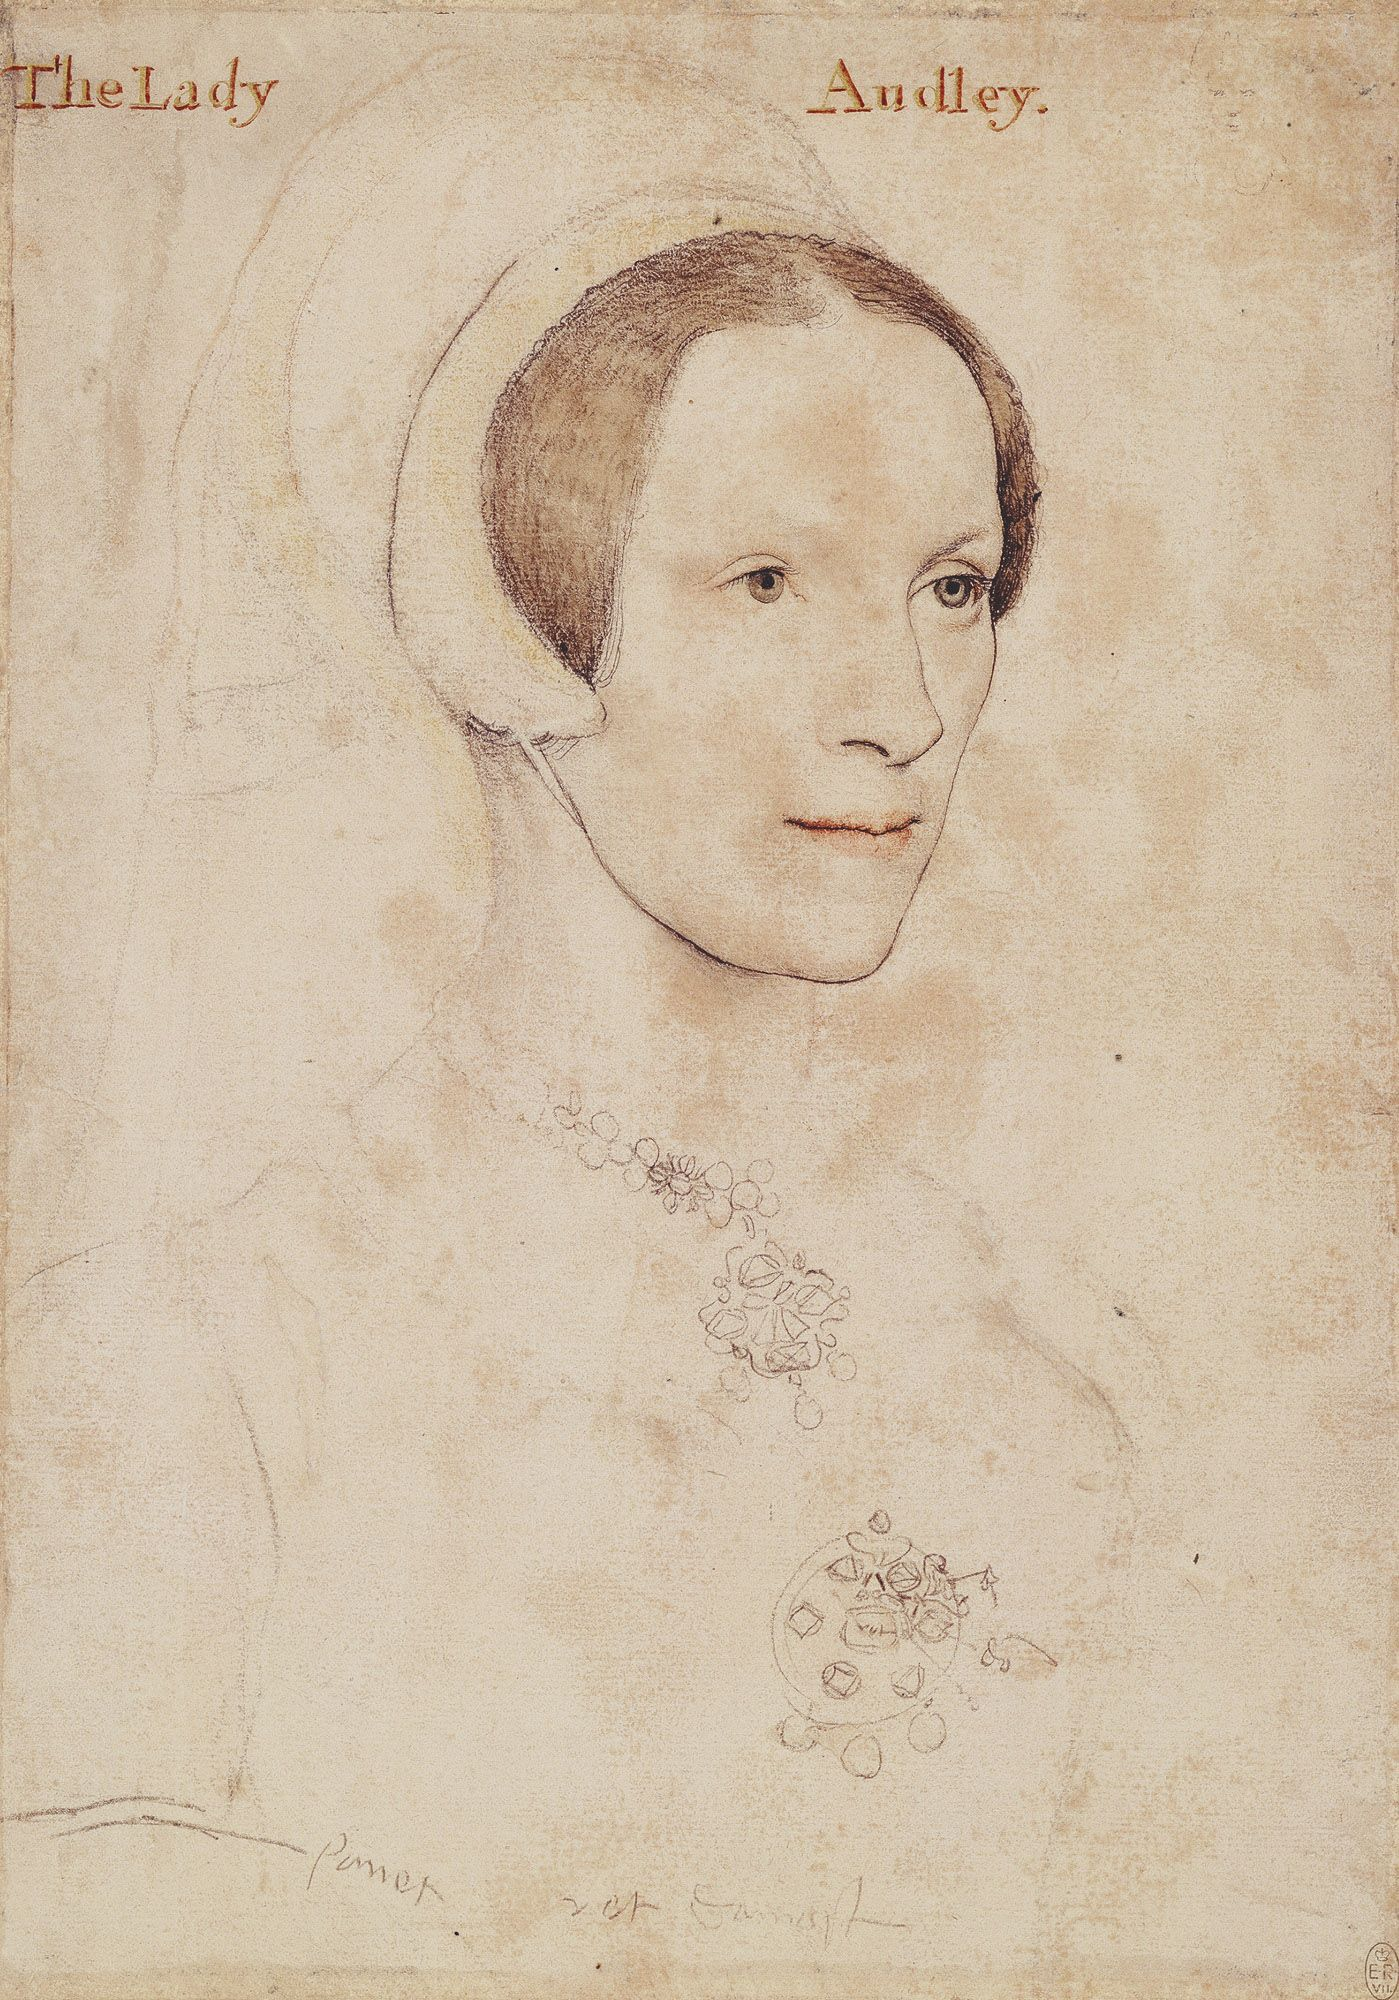 Hans Holbein the Younger, Elizabeth, Lady Audley (ca. 1538, Royal Collection, London) The familiar labeling on the sketches of Holbein were added in the 18th century and not assumed accurate. Note the jewelry detail.